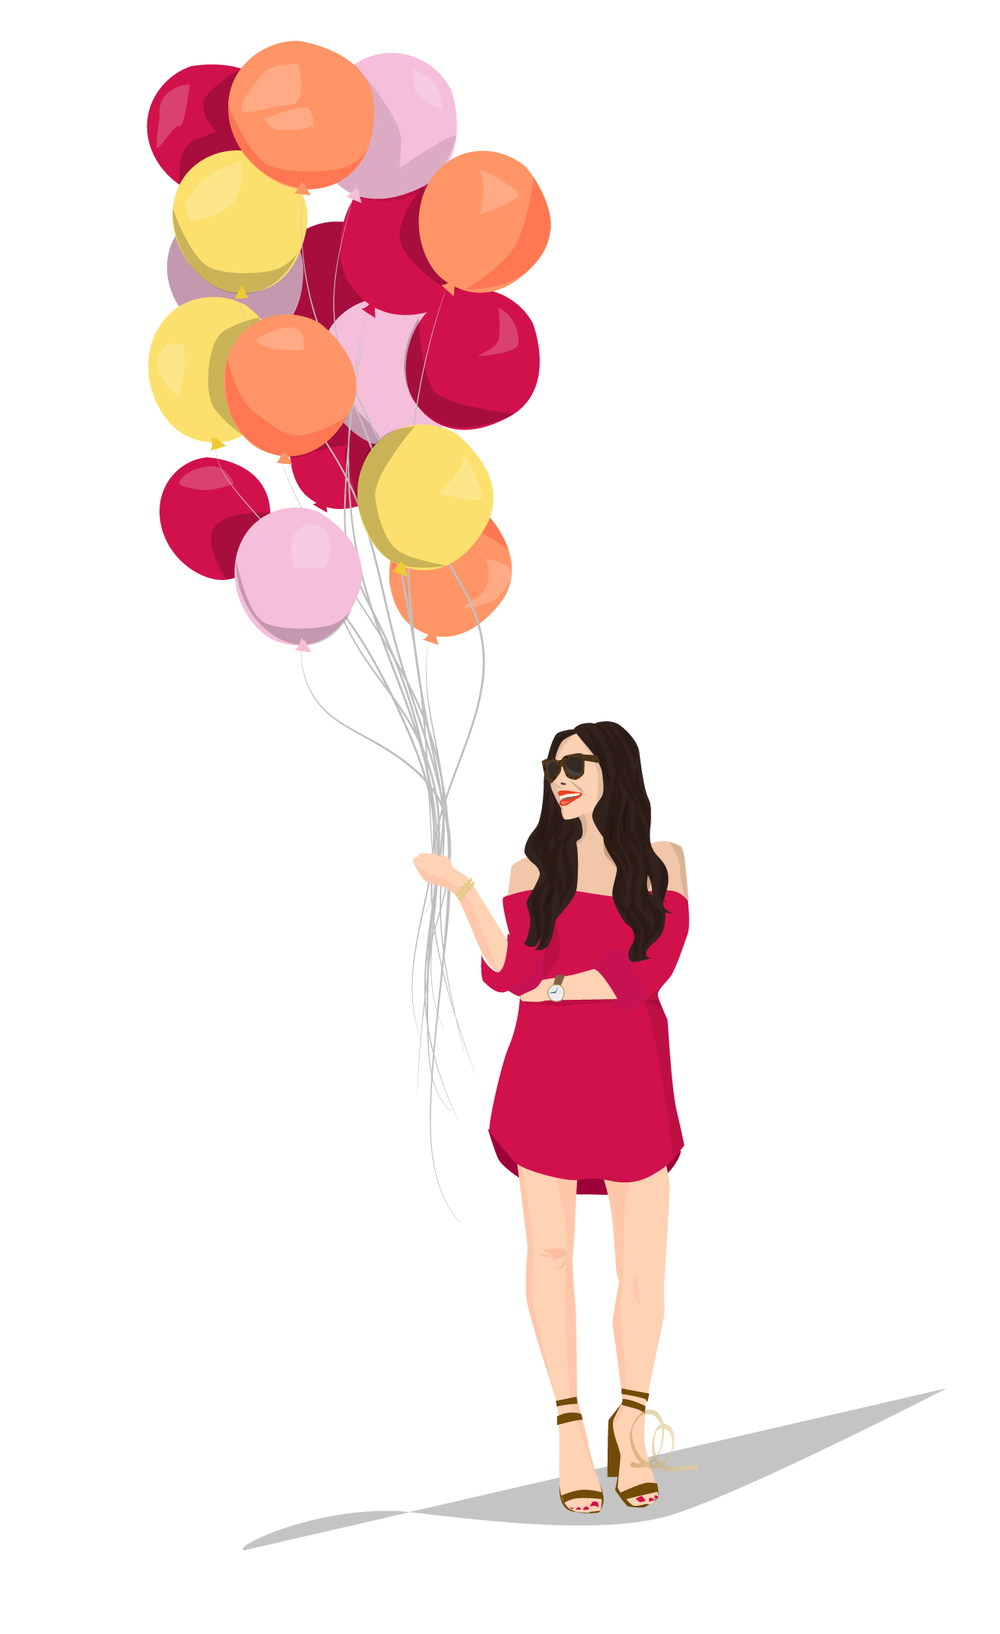 ll-creative-balloon-girl-illustration.jpg